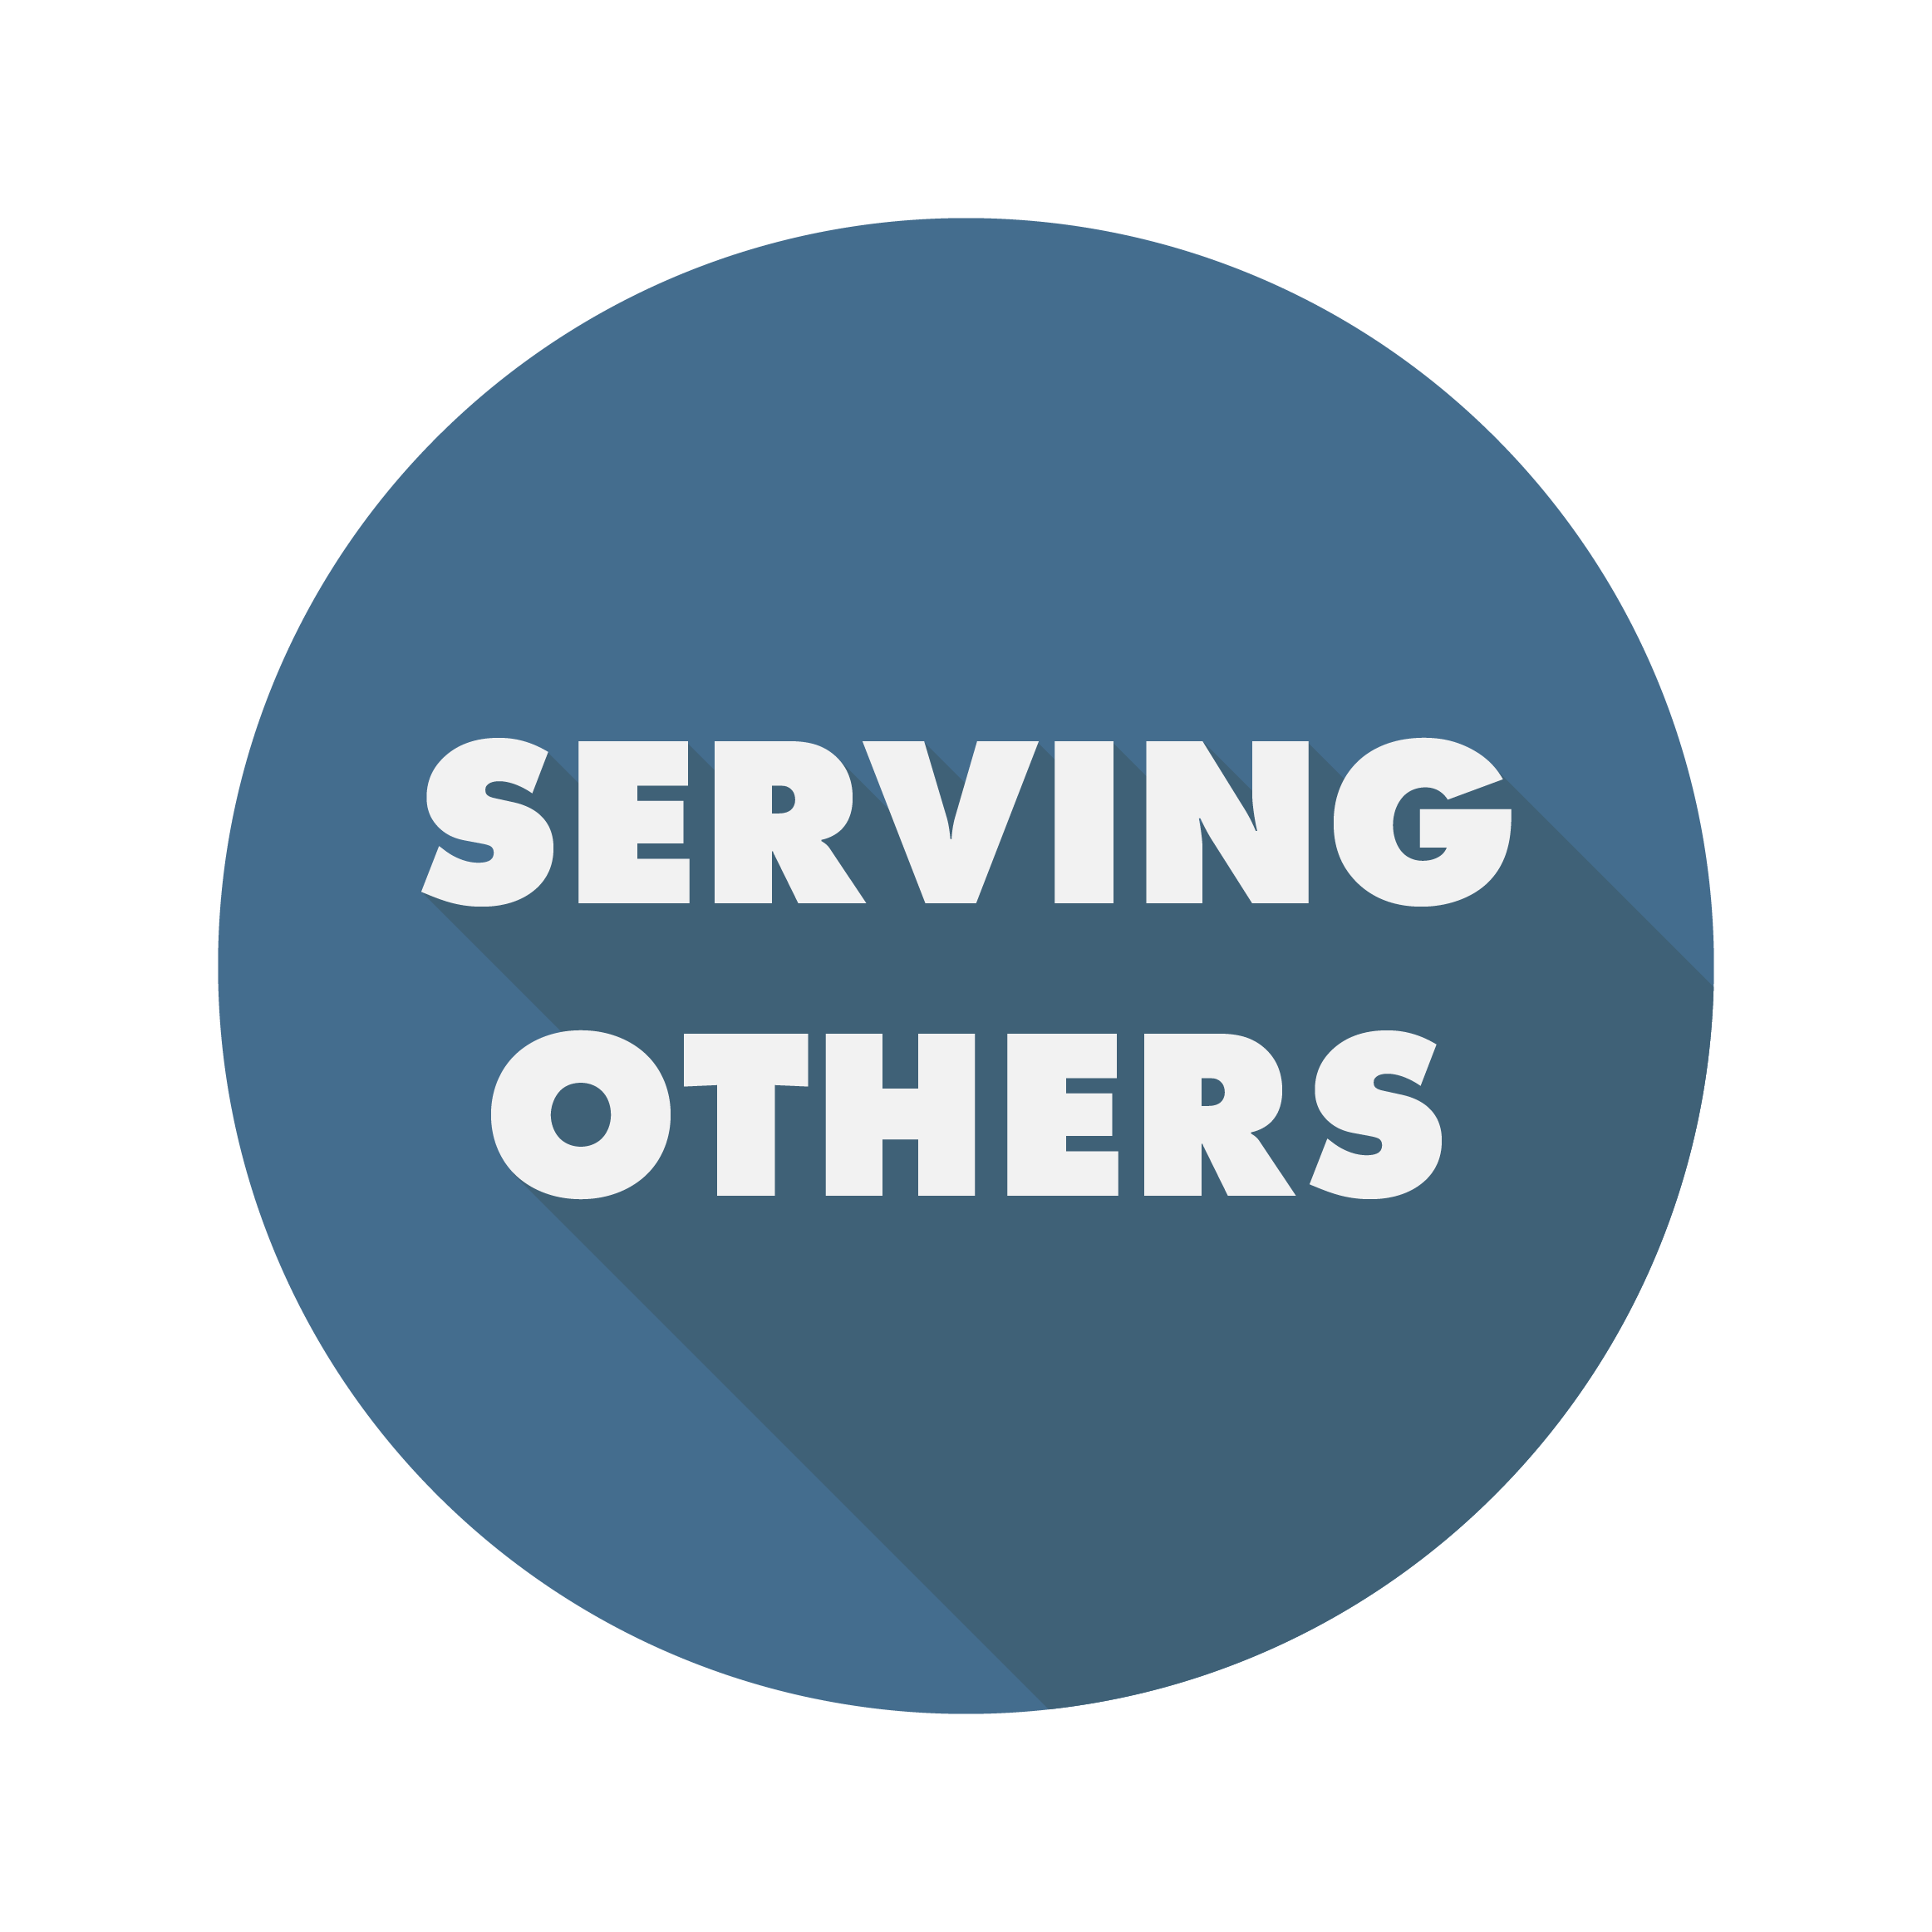 Serving Others-01.png